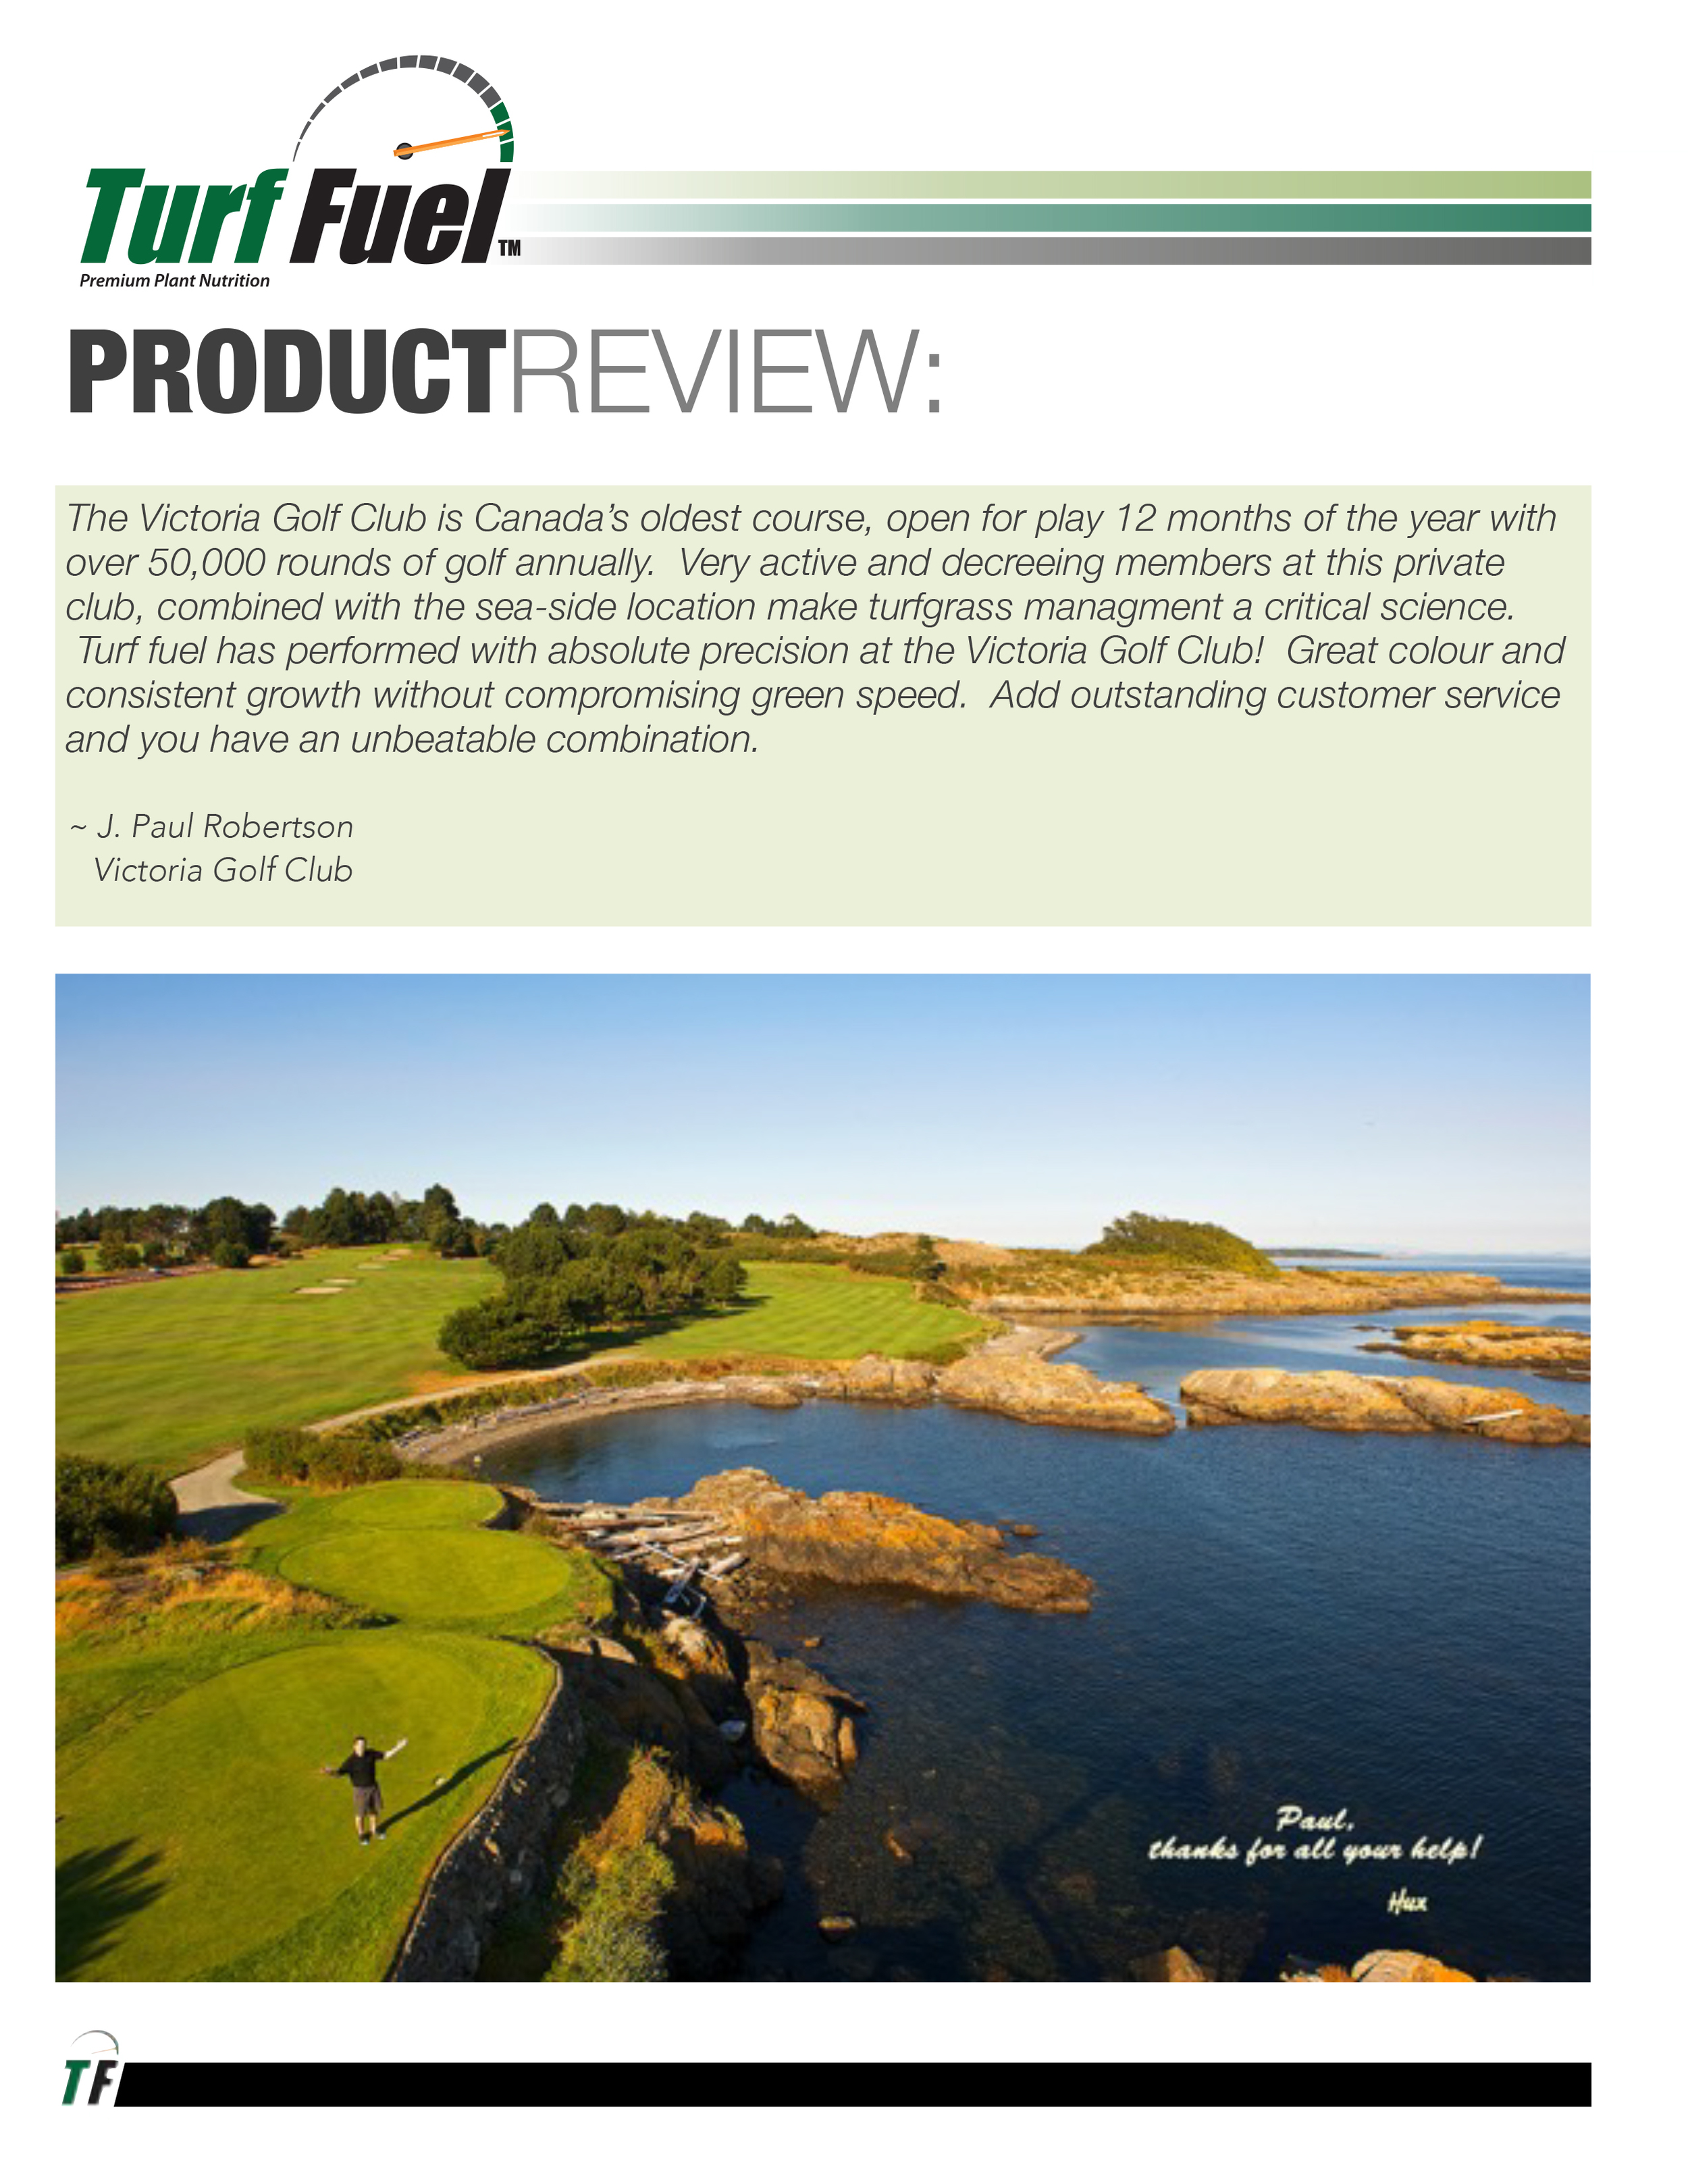 PRODUCT REVIEW VGC